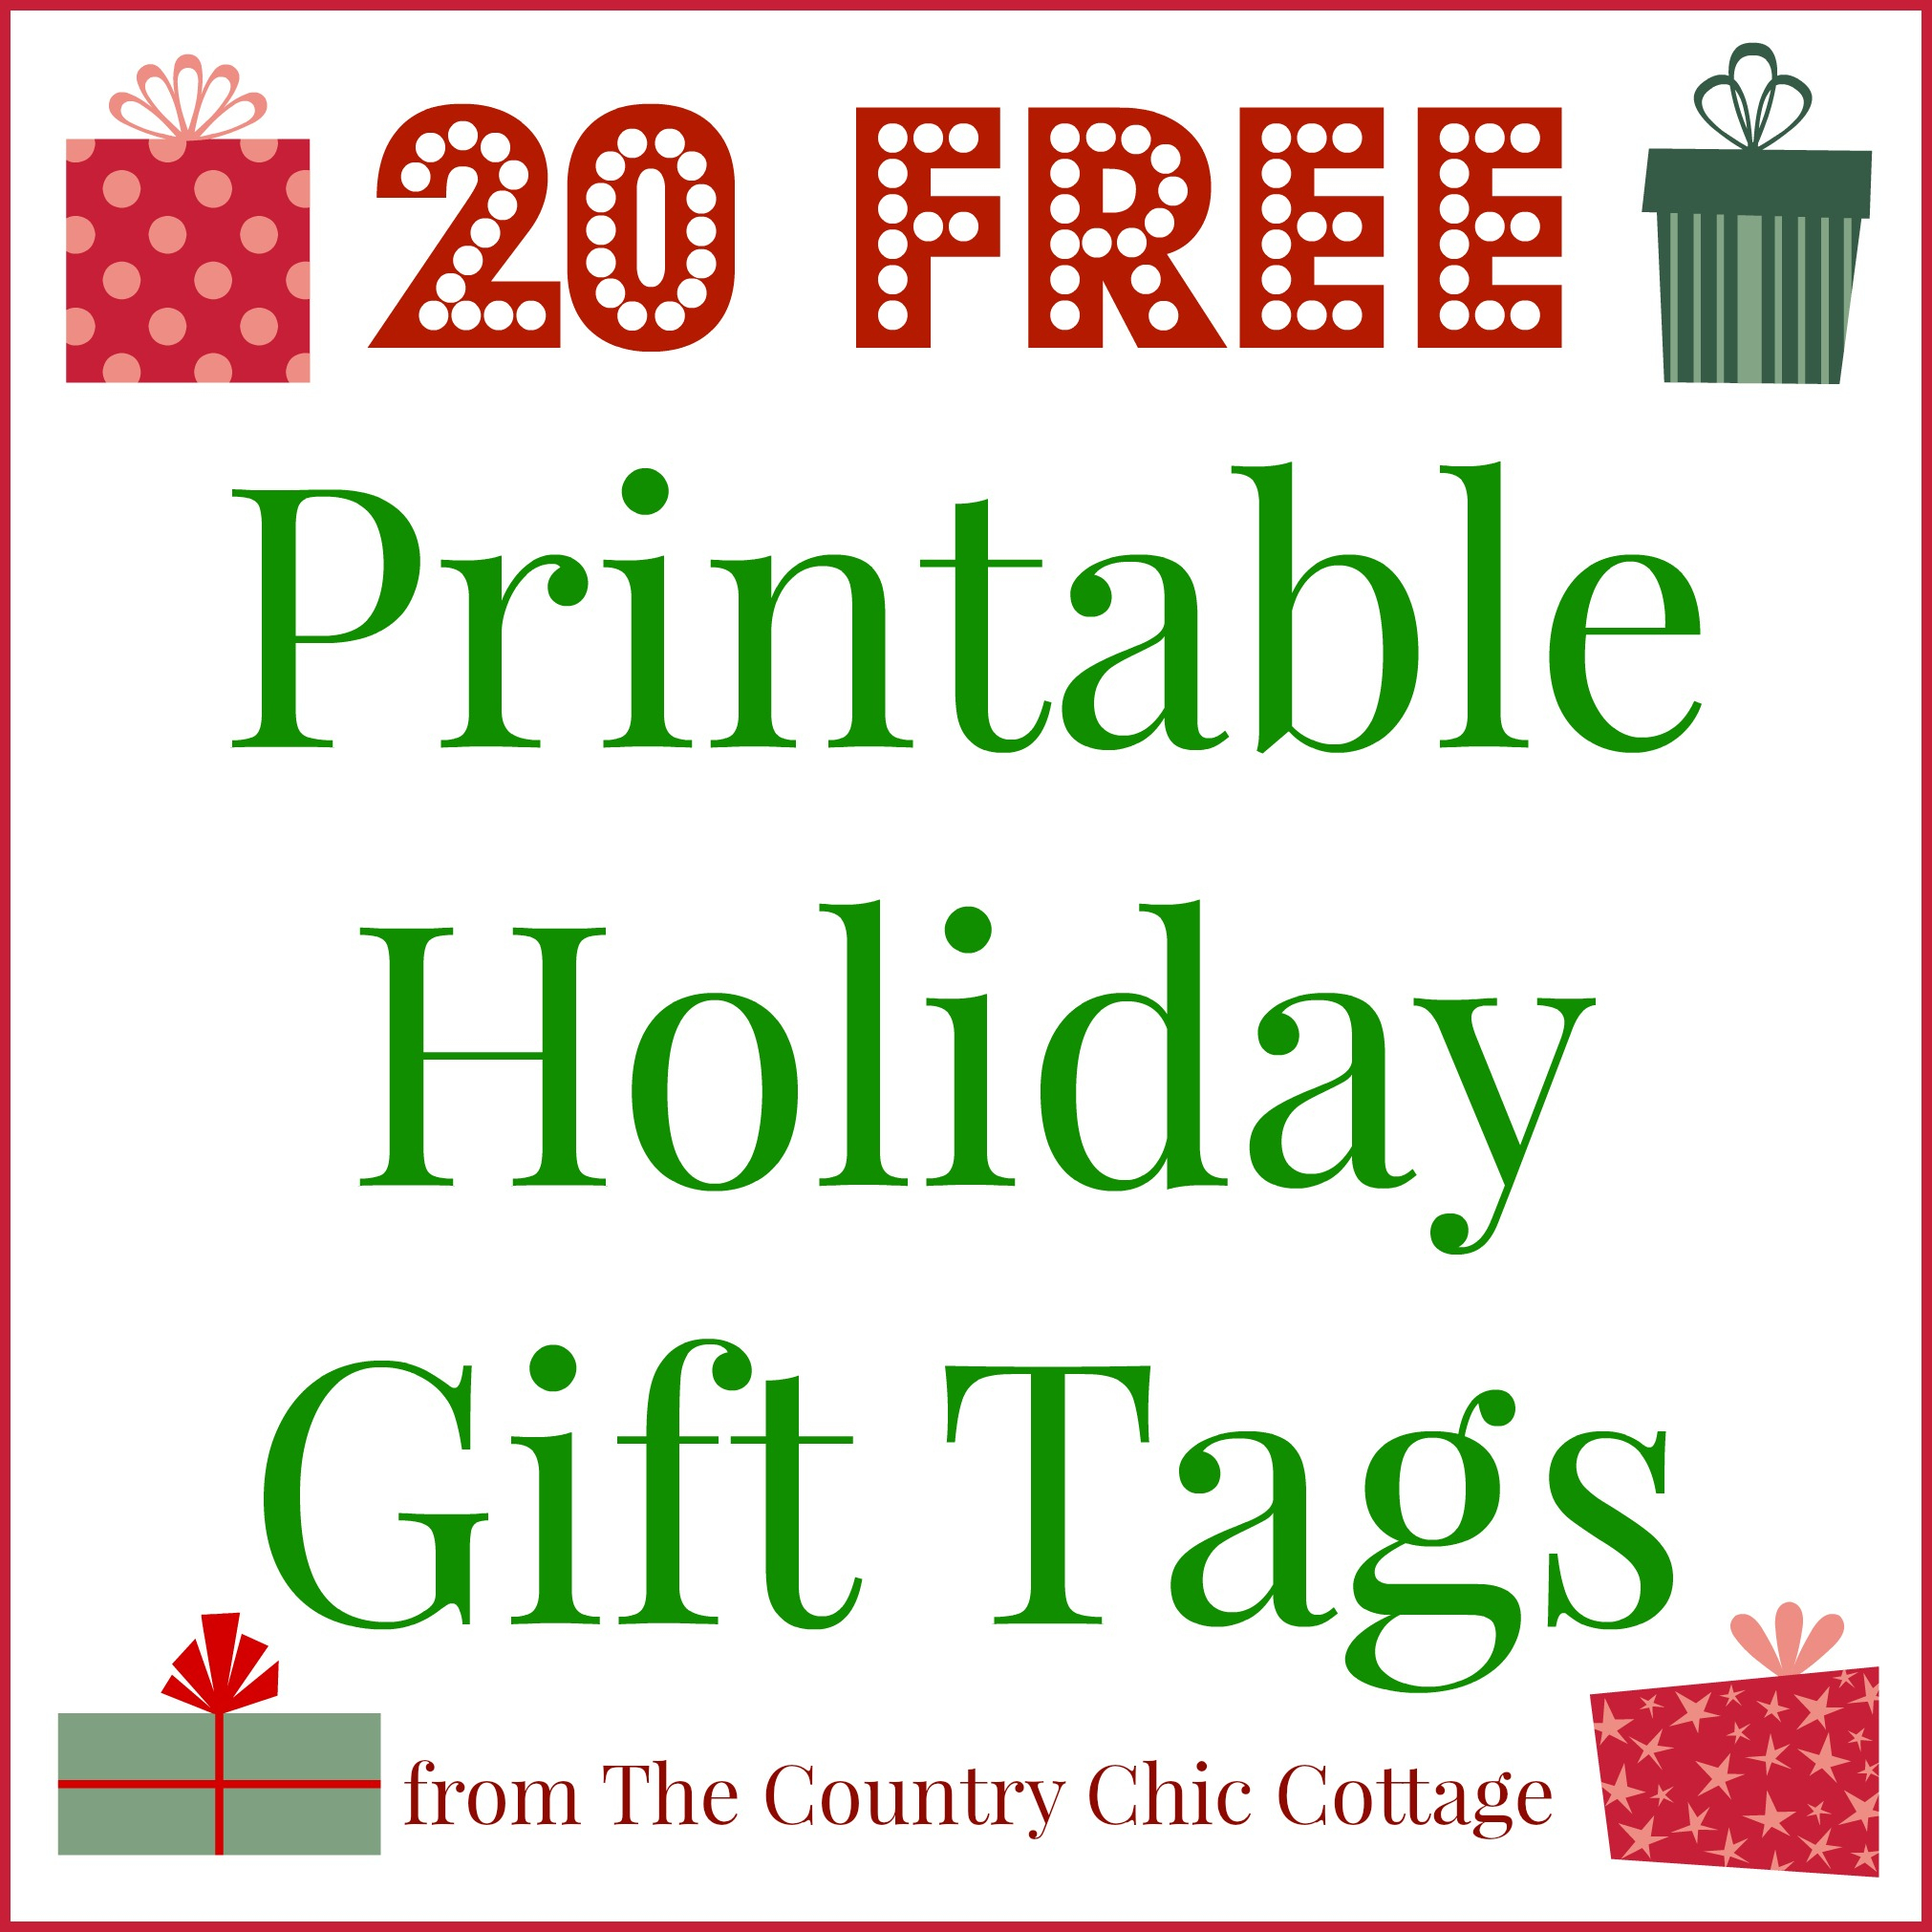 20 Printable Holiday Gift Tags (For Free!!) - The Country Chic Cottage - Free Printable Christmas Designs